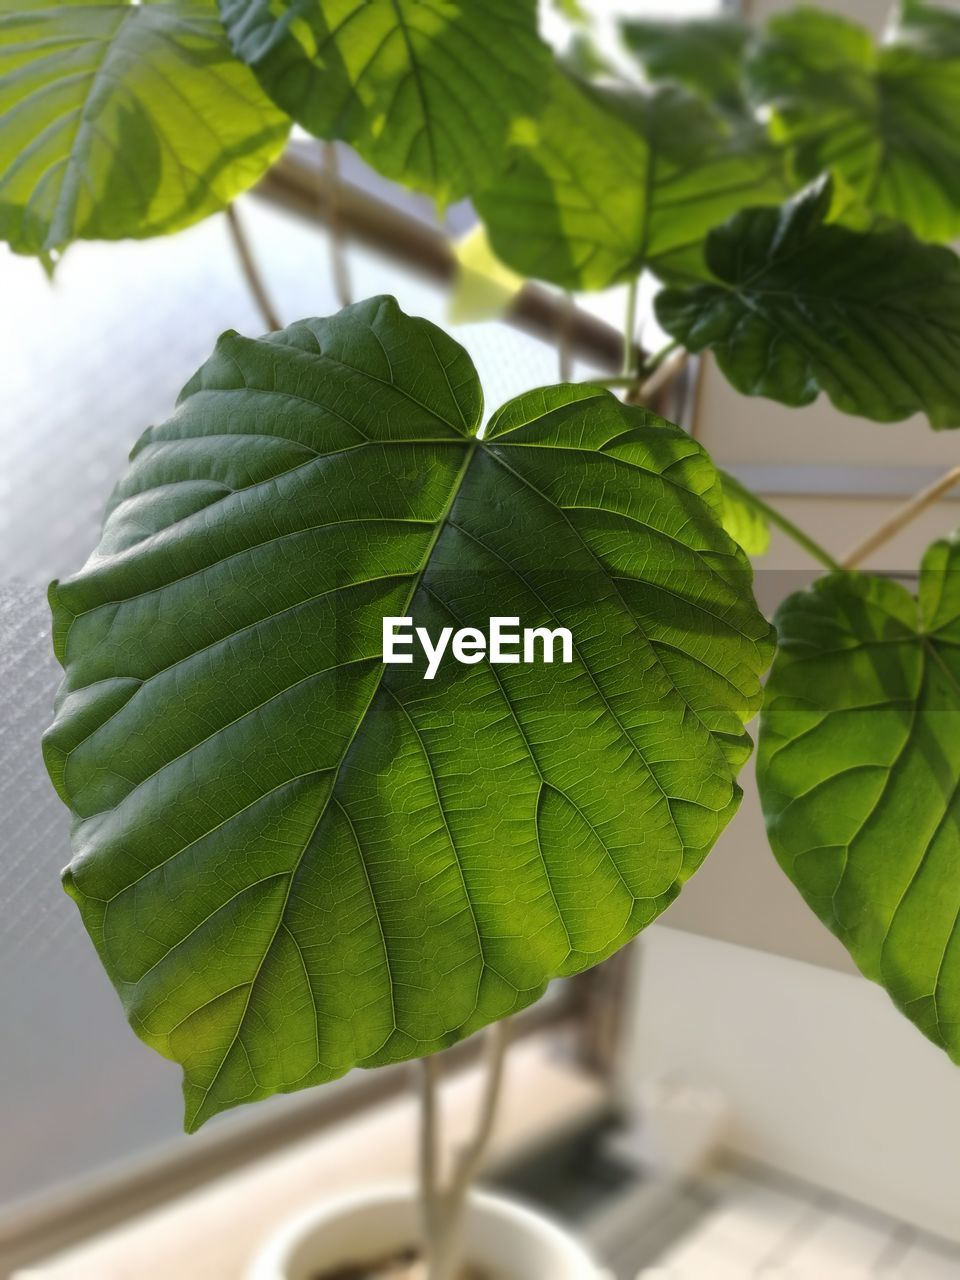 leaf, green color, close-up, day, growth, nature, plant, no people, freshness, beauty in nature, outdoors